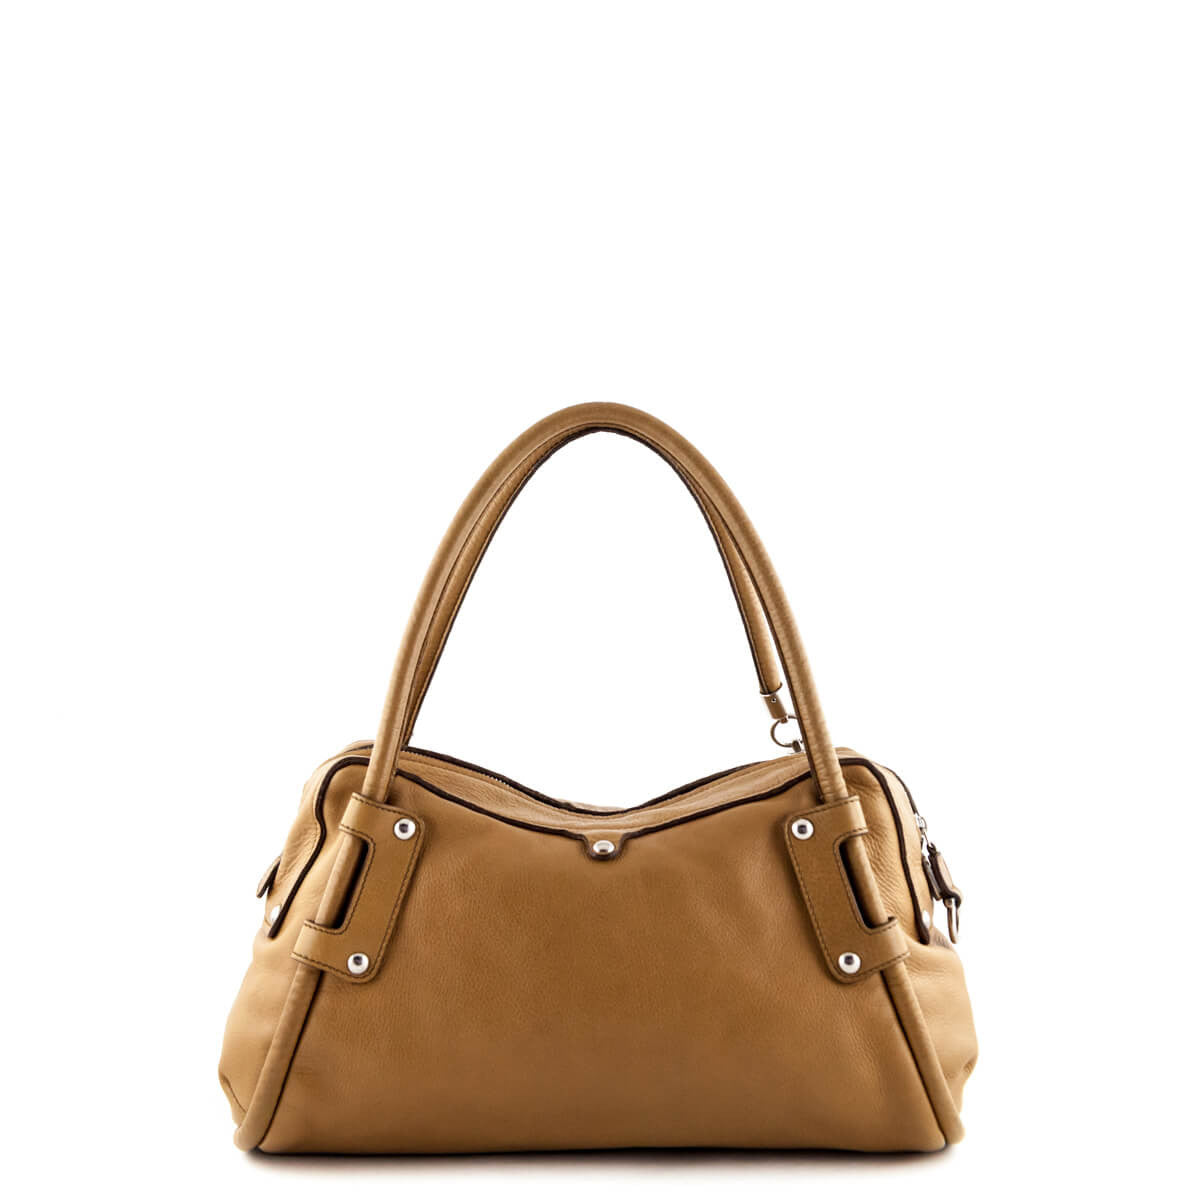 ... Salvatore Ferragamo Camel Tassel Zipper Satchel - LOVE that BAG -  Preowned Authentic Designer Handbags ... d5917d9c23bd5